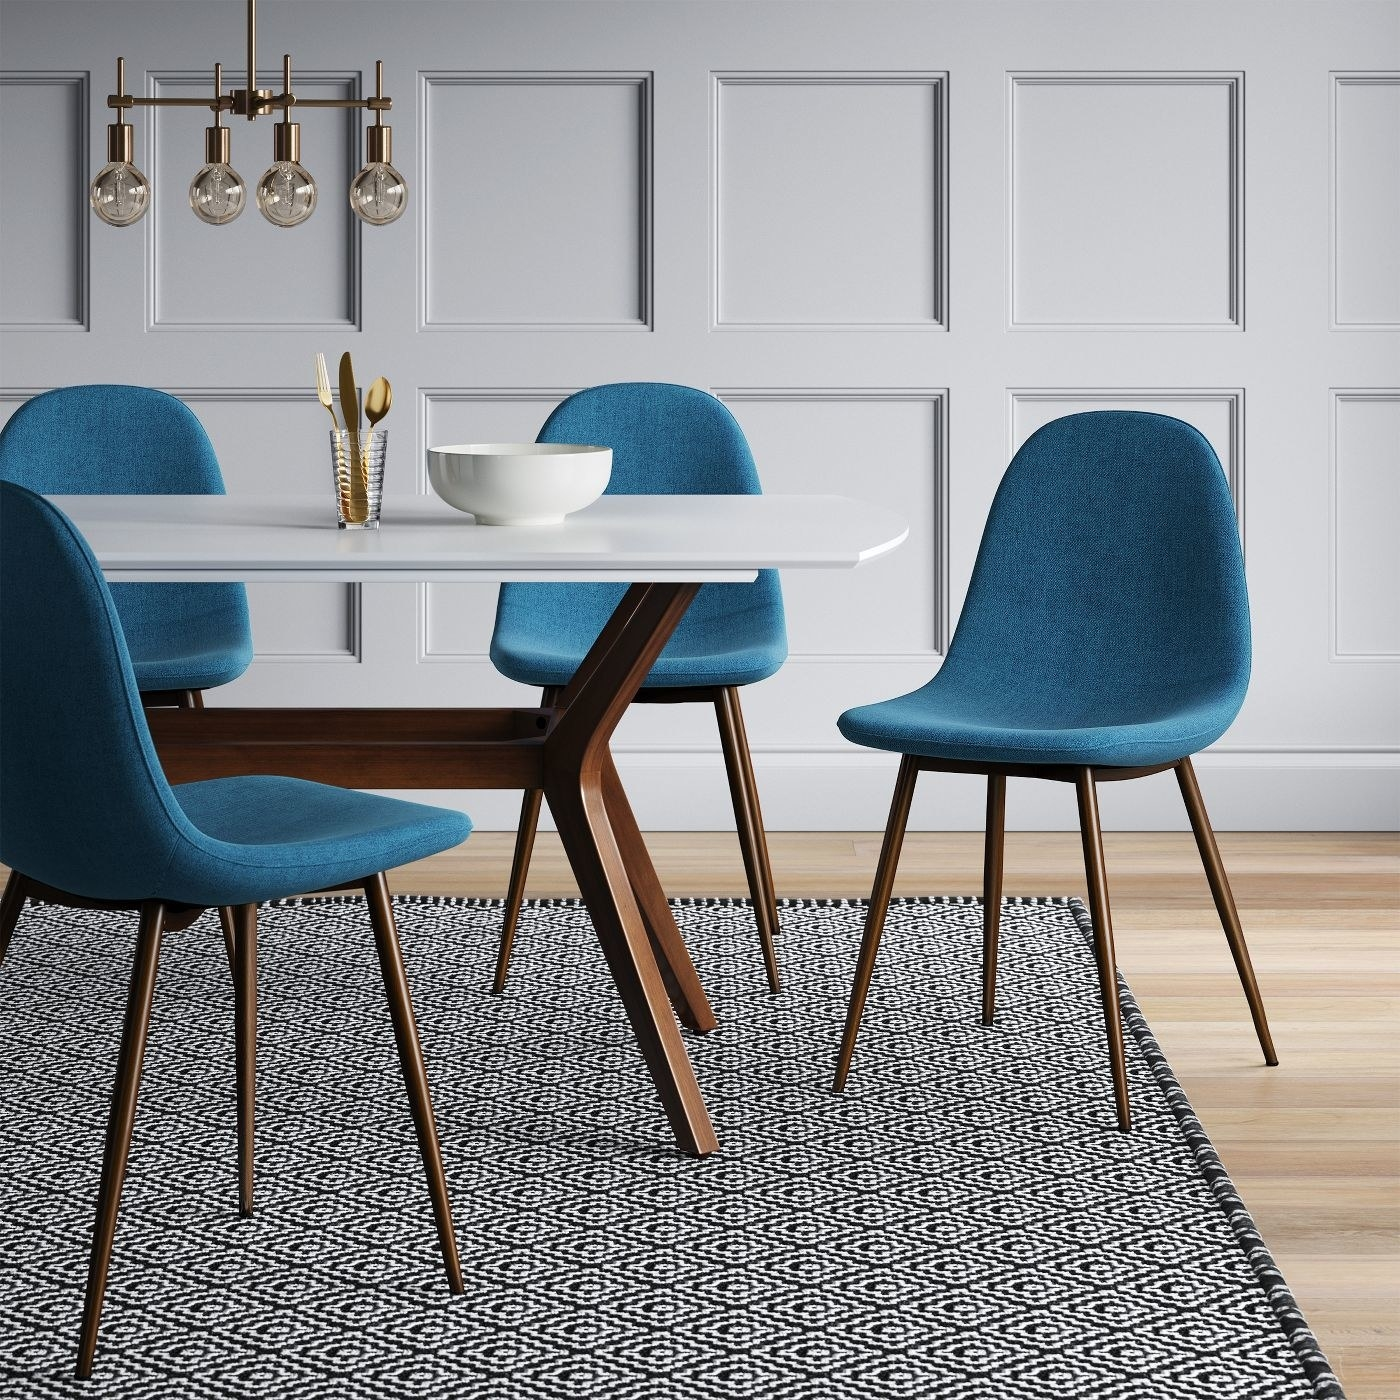 four teal upholstered dining chairs with wood legs around a white table